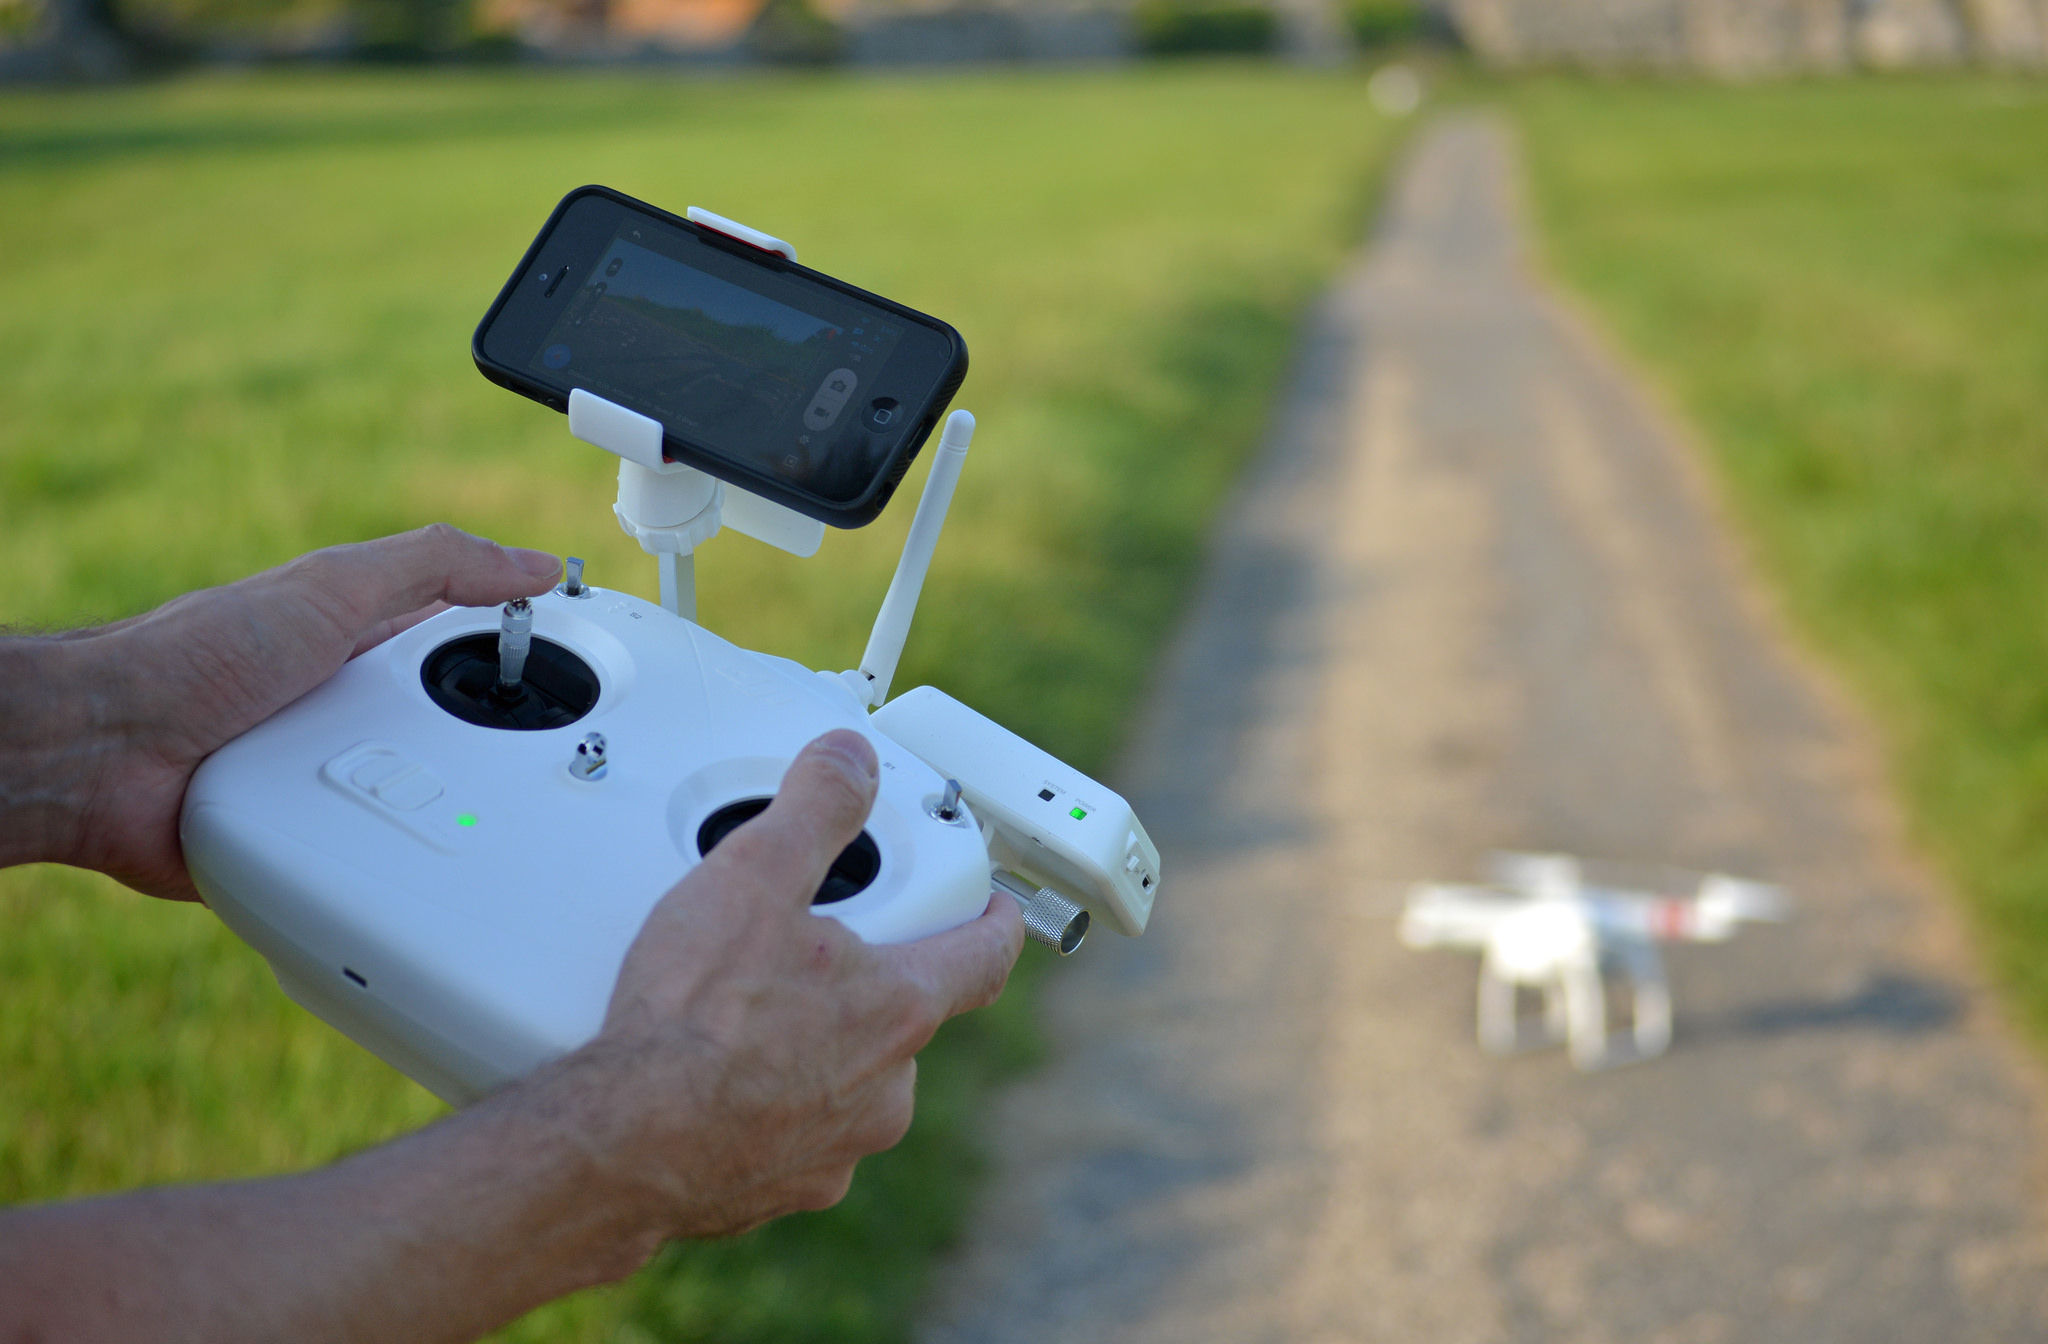 DJI Quadcoptor Phantom Vision Plus, Vicki Burton July 22, 2014